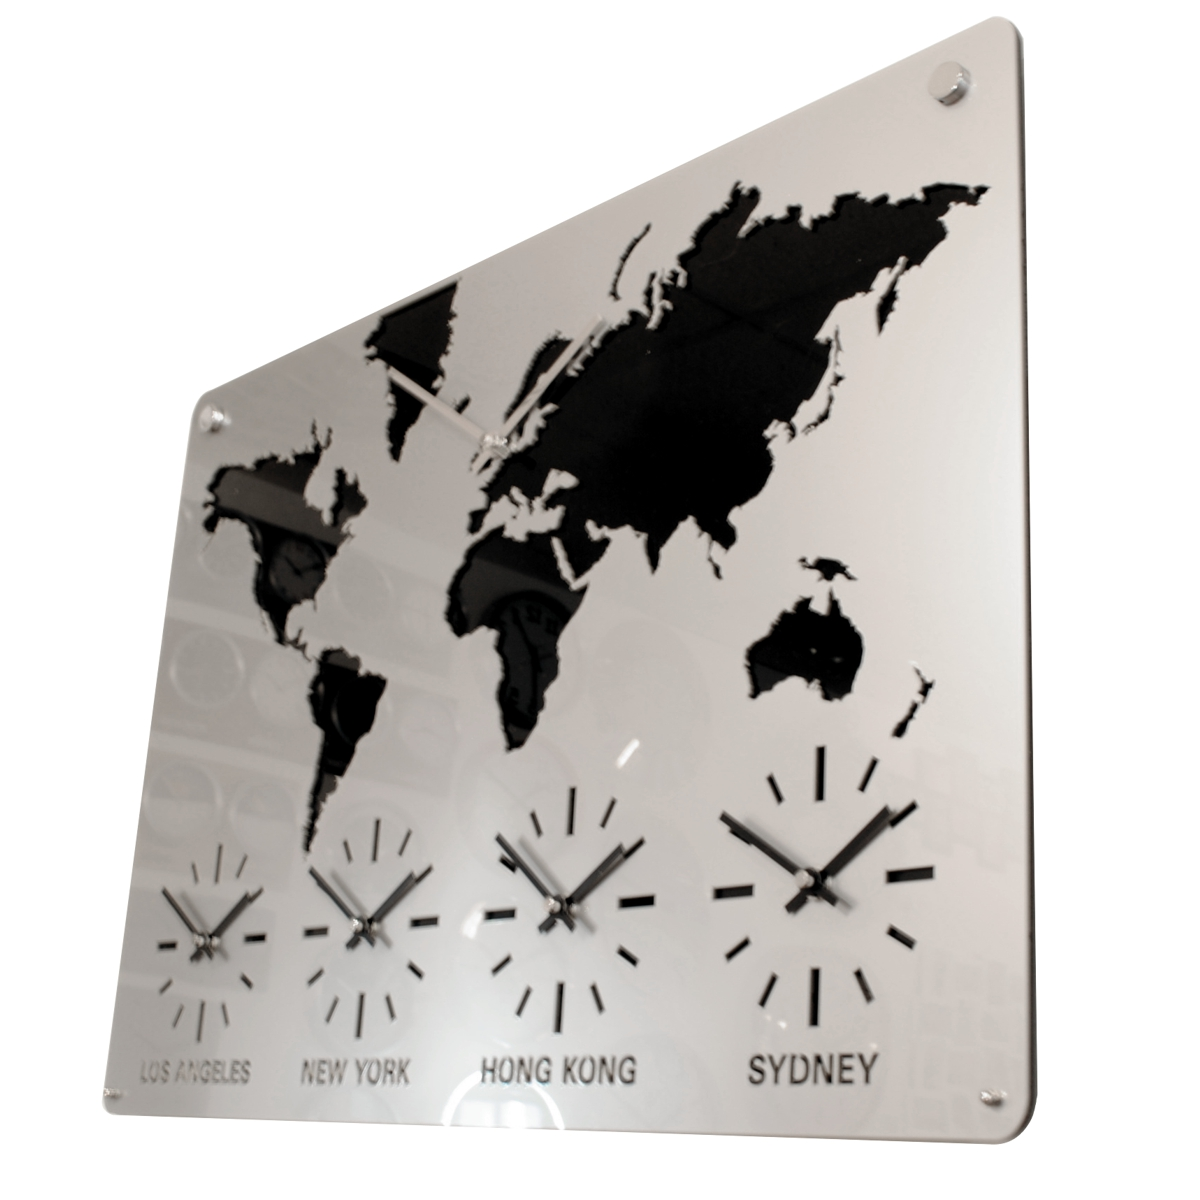 Personalized Custom World Time Zone Clocks | Buy Online USA